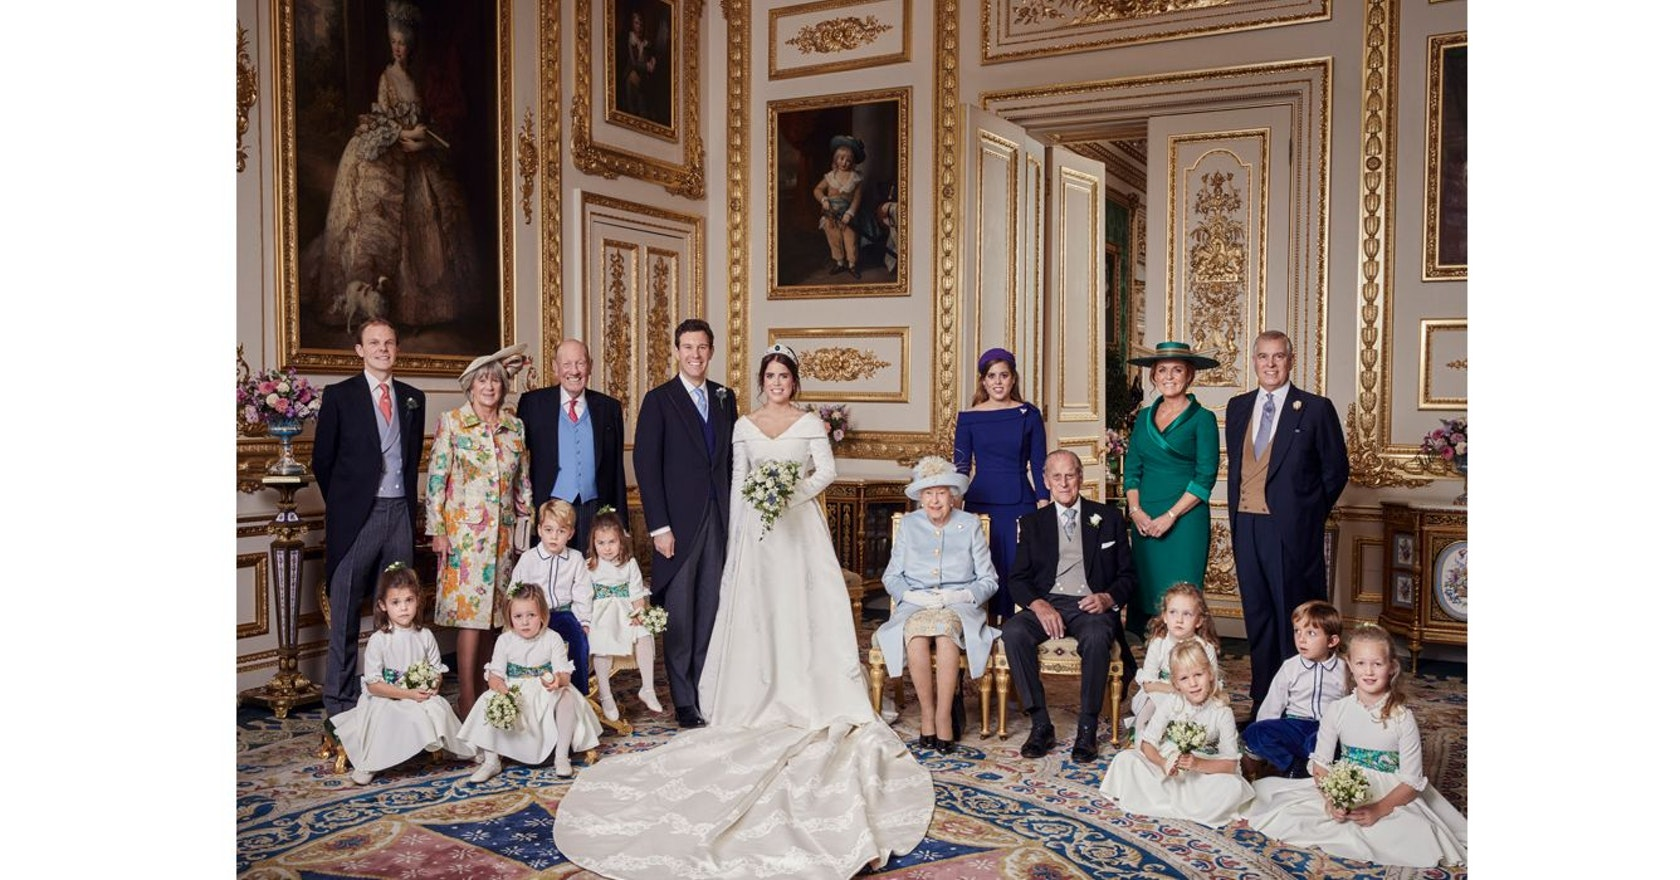 These are Princess Eugenie's official wedding photos